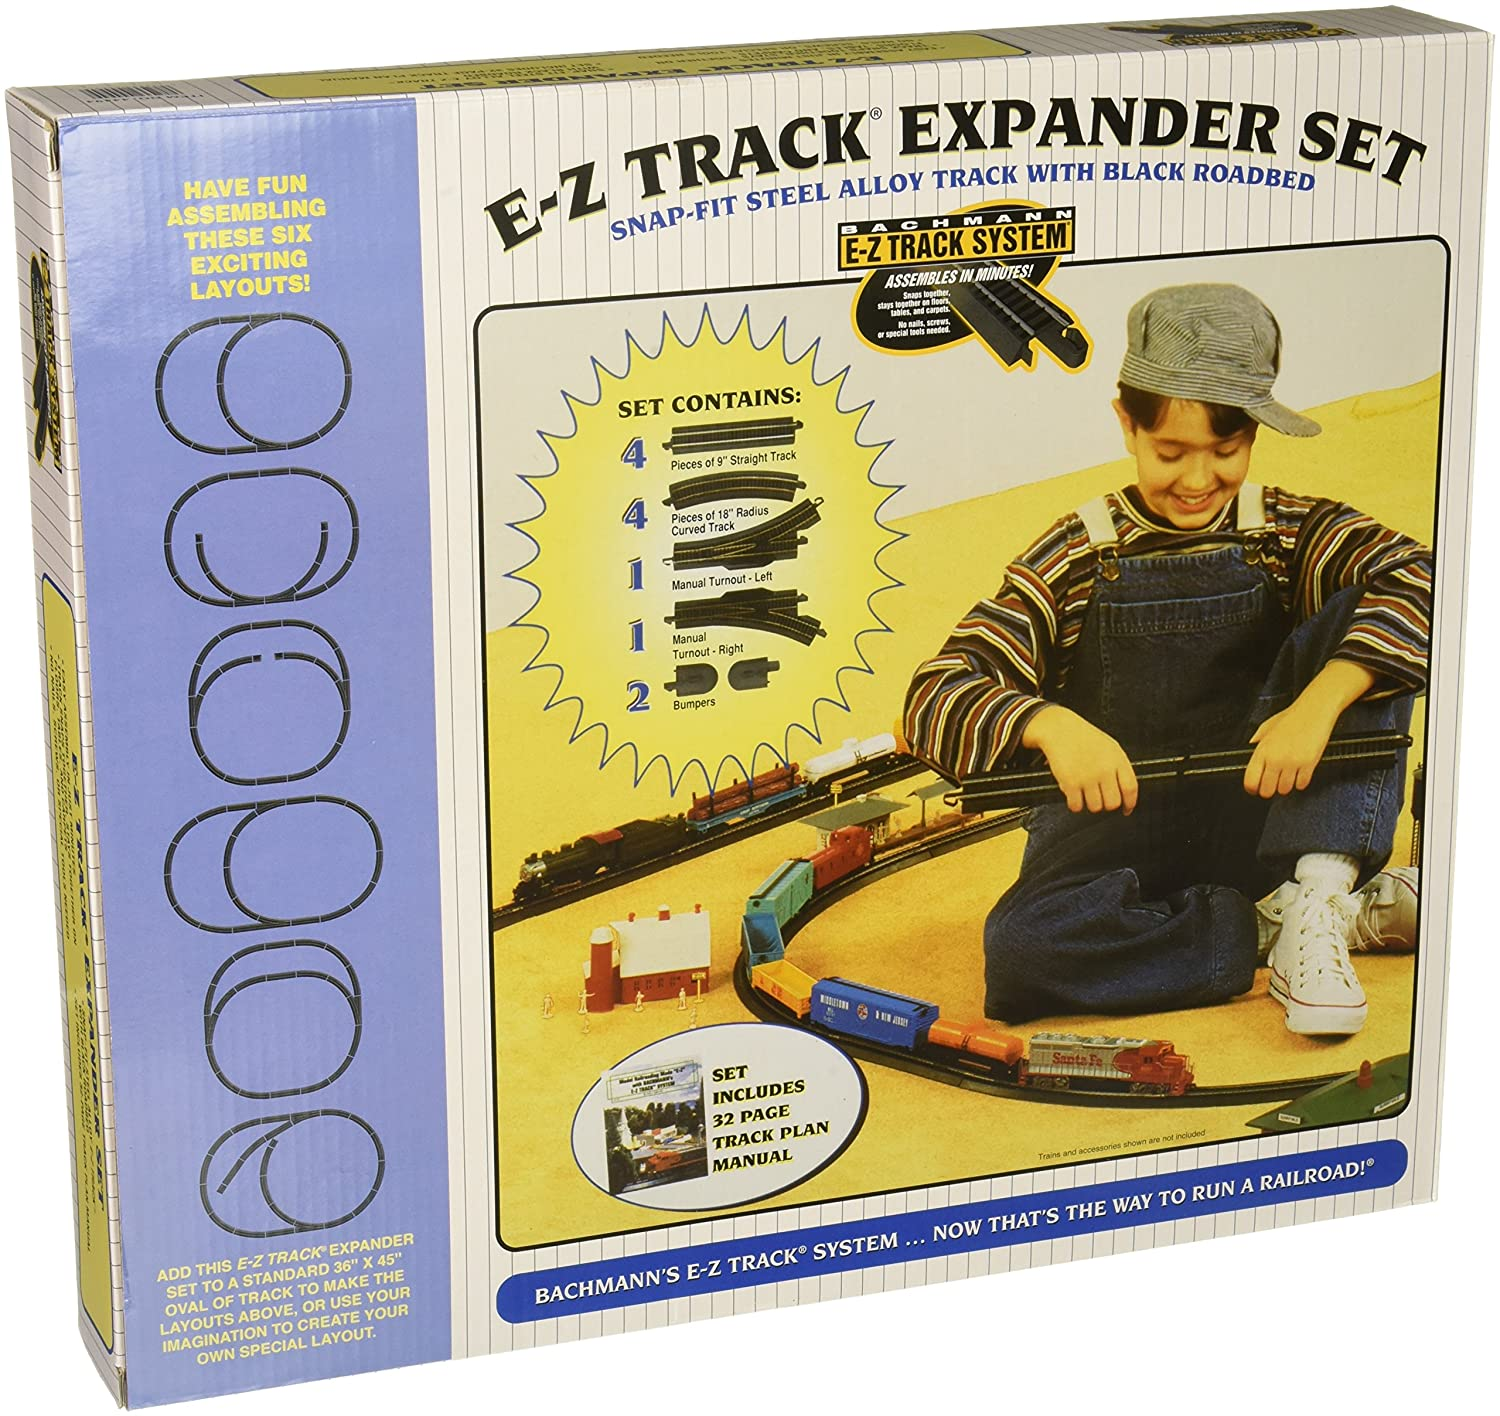 Steel Alloy EZ Layout Expander Set